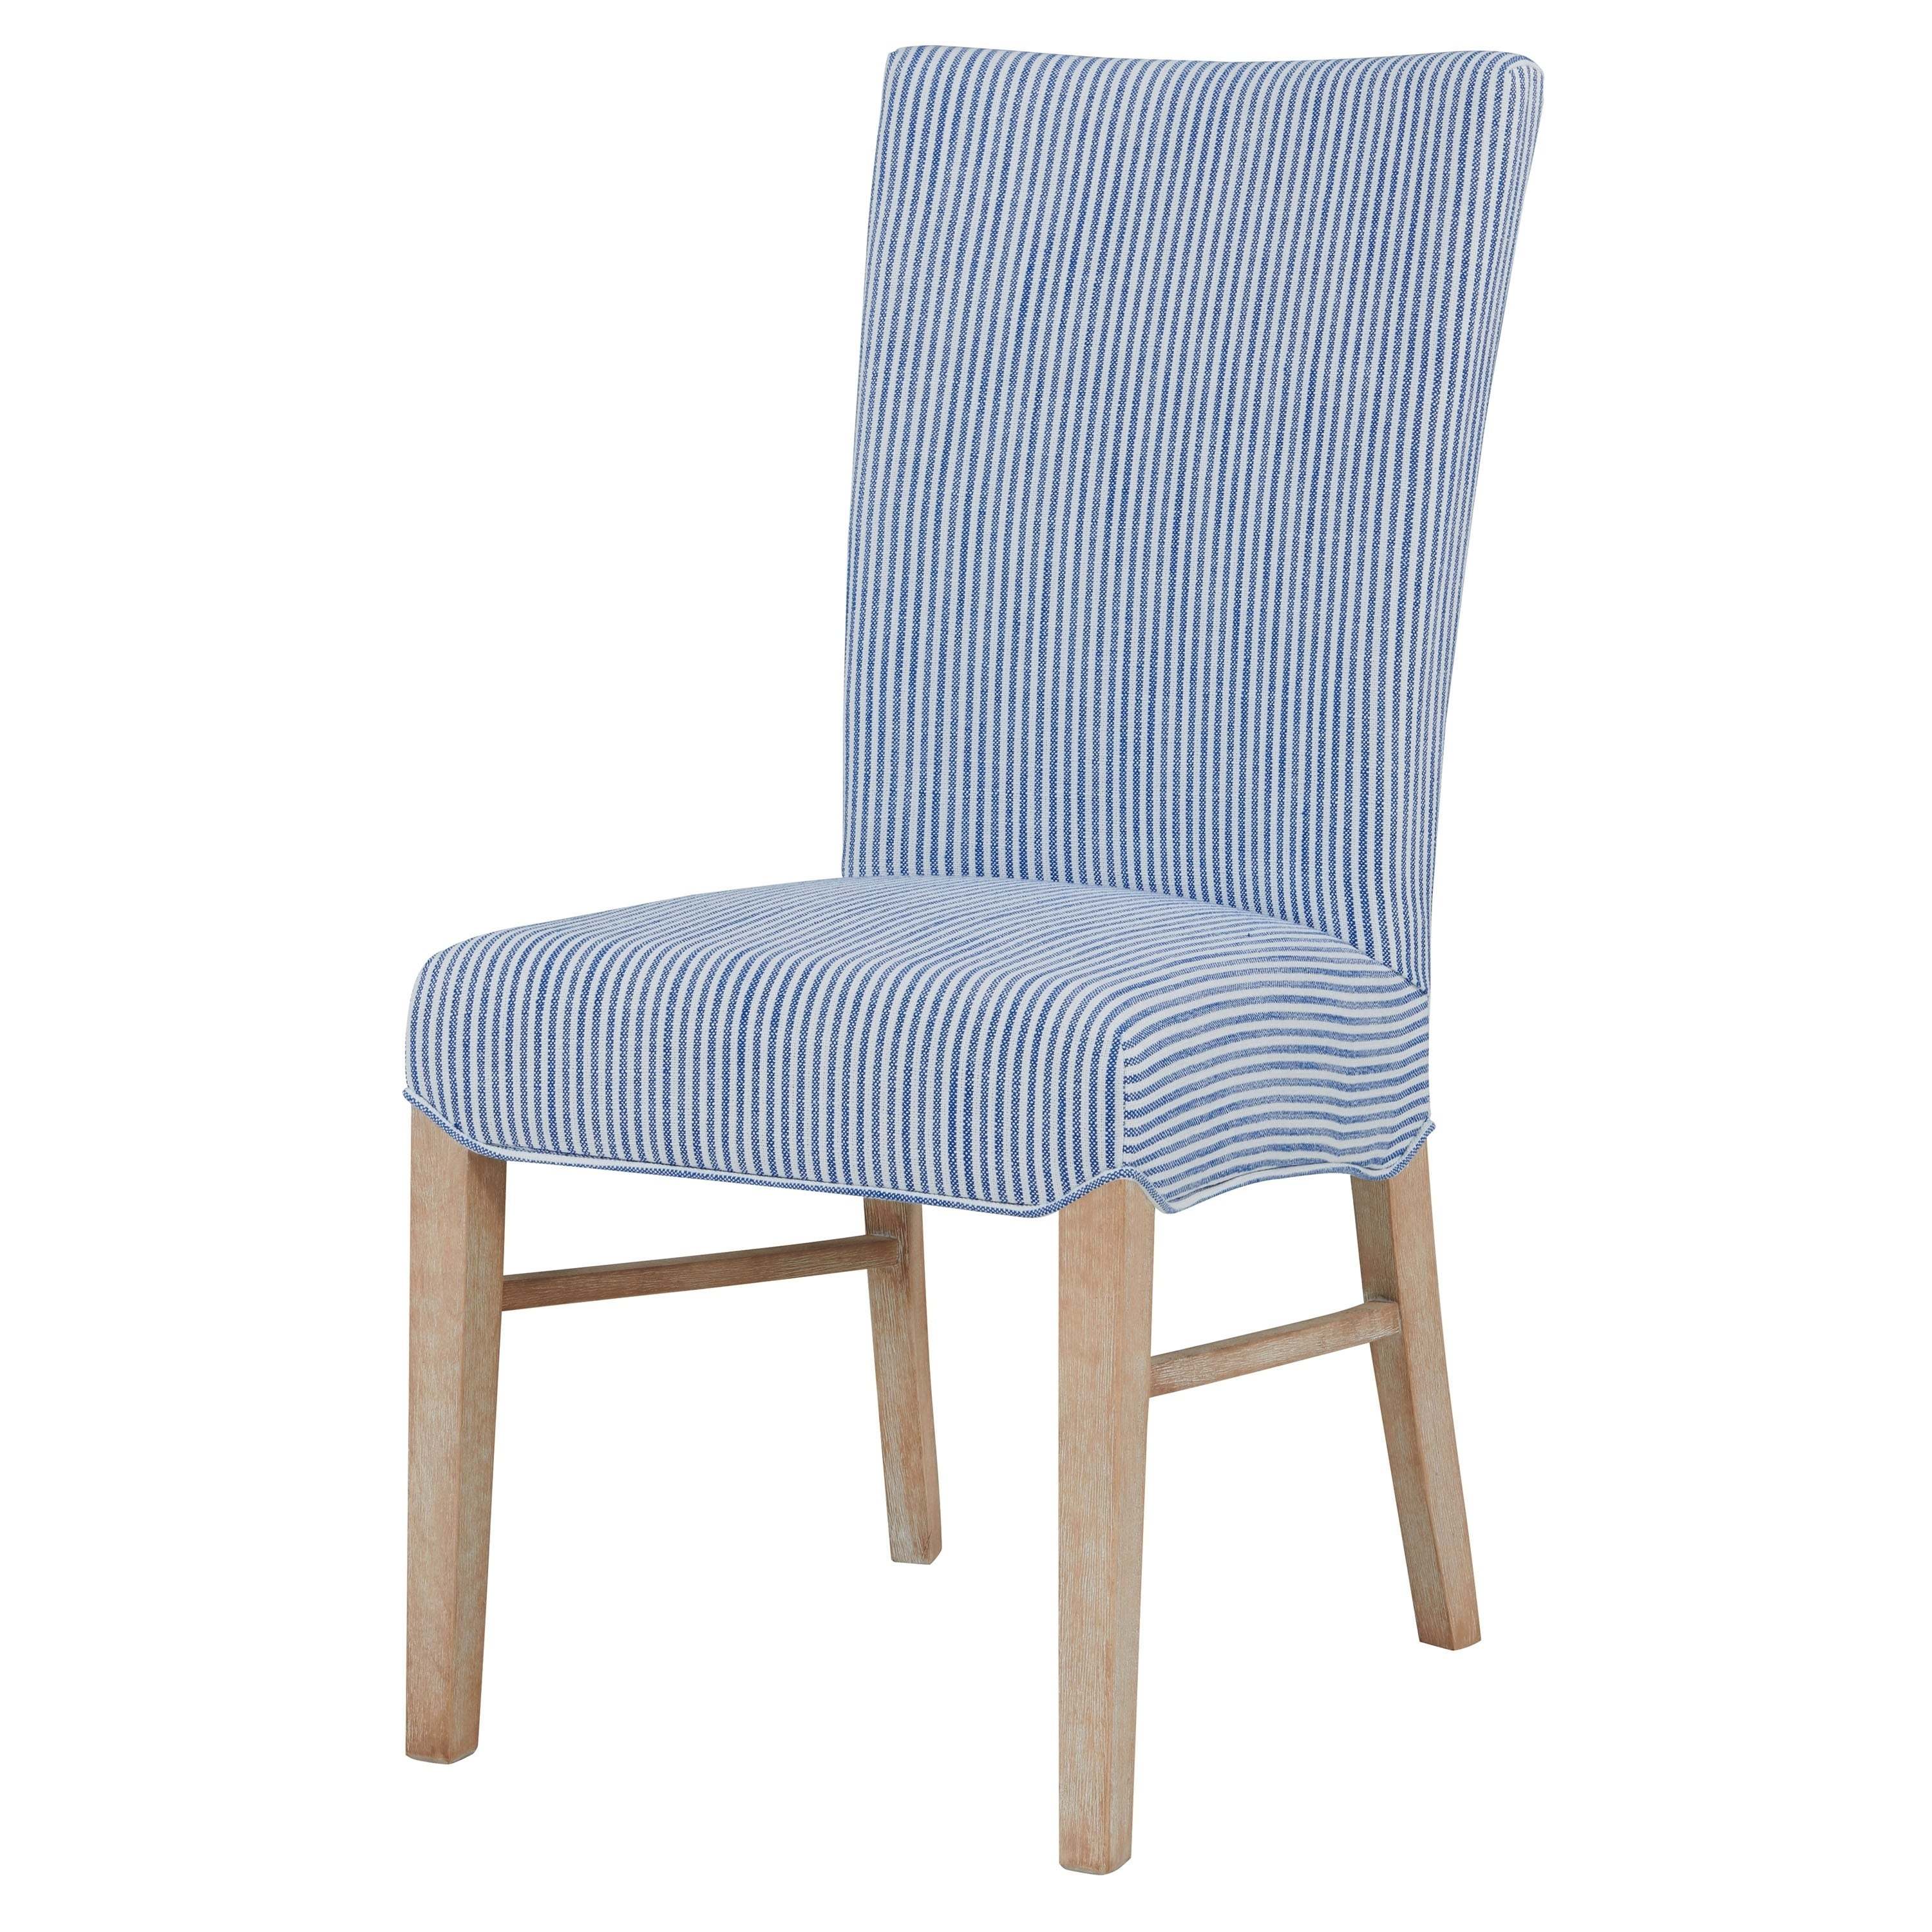 Shop milton fabric chairset of 2 97 viscose 3 linen free shipping today overstock com 26058366